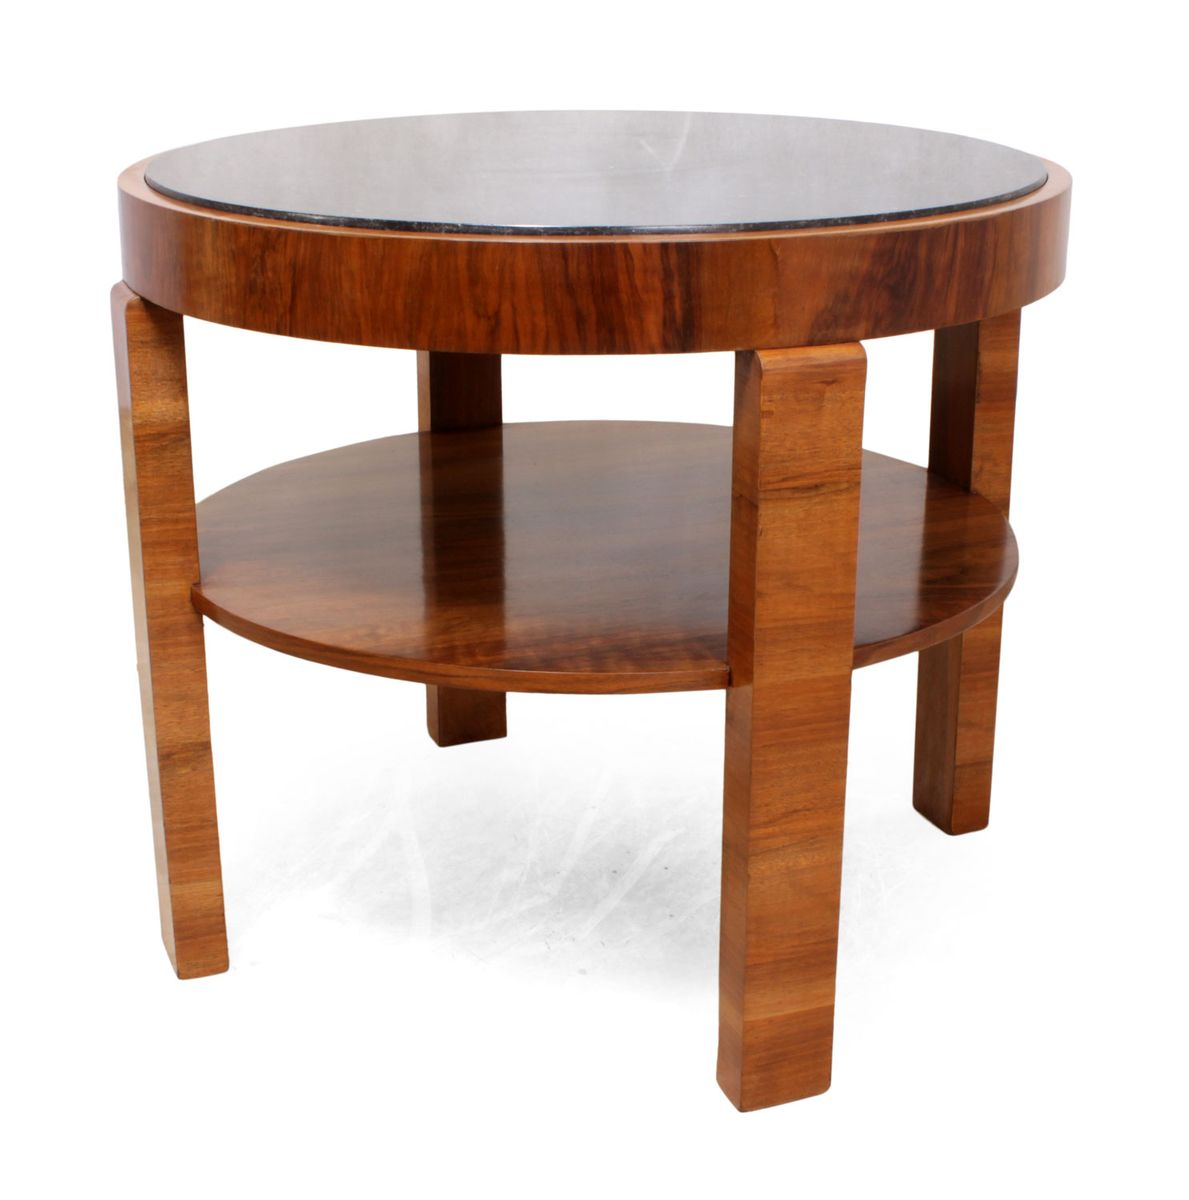 walnut coffee table. Art Deco Walnut Coffee Table With Marble Top, 1930s